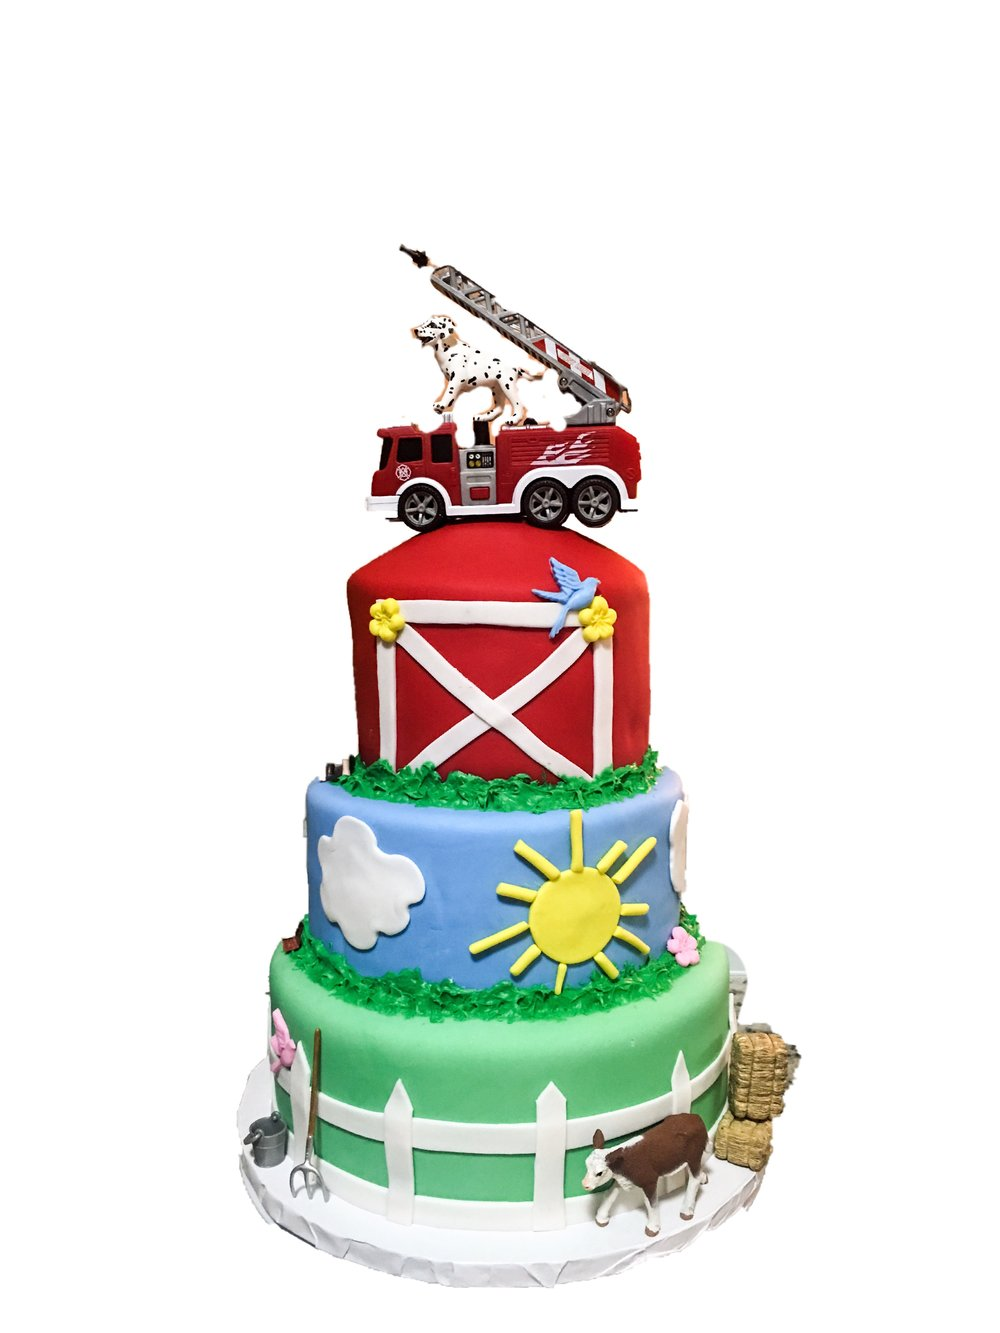 Custom Farm & Fire Truck Cake